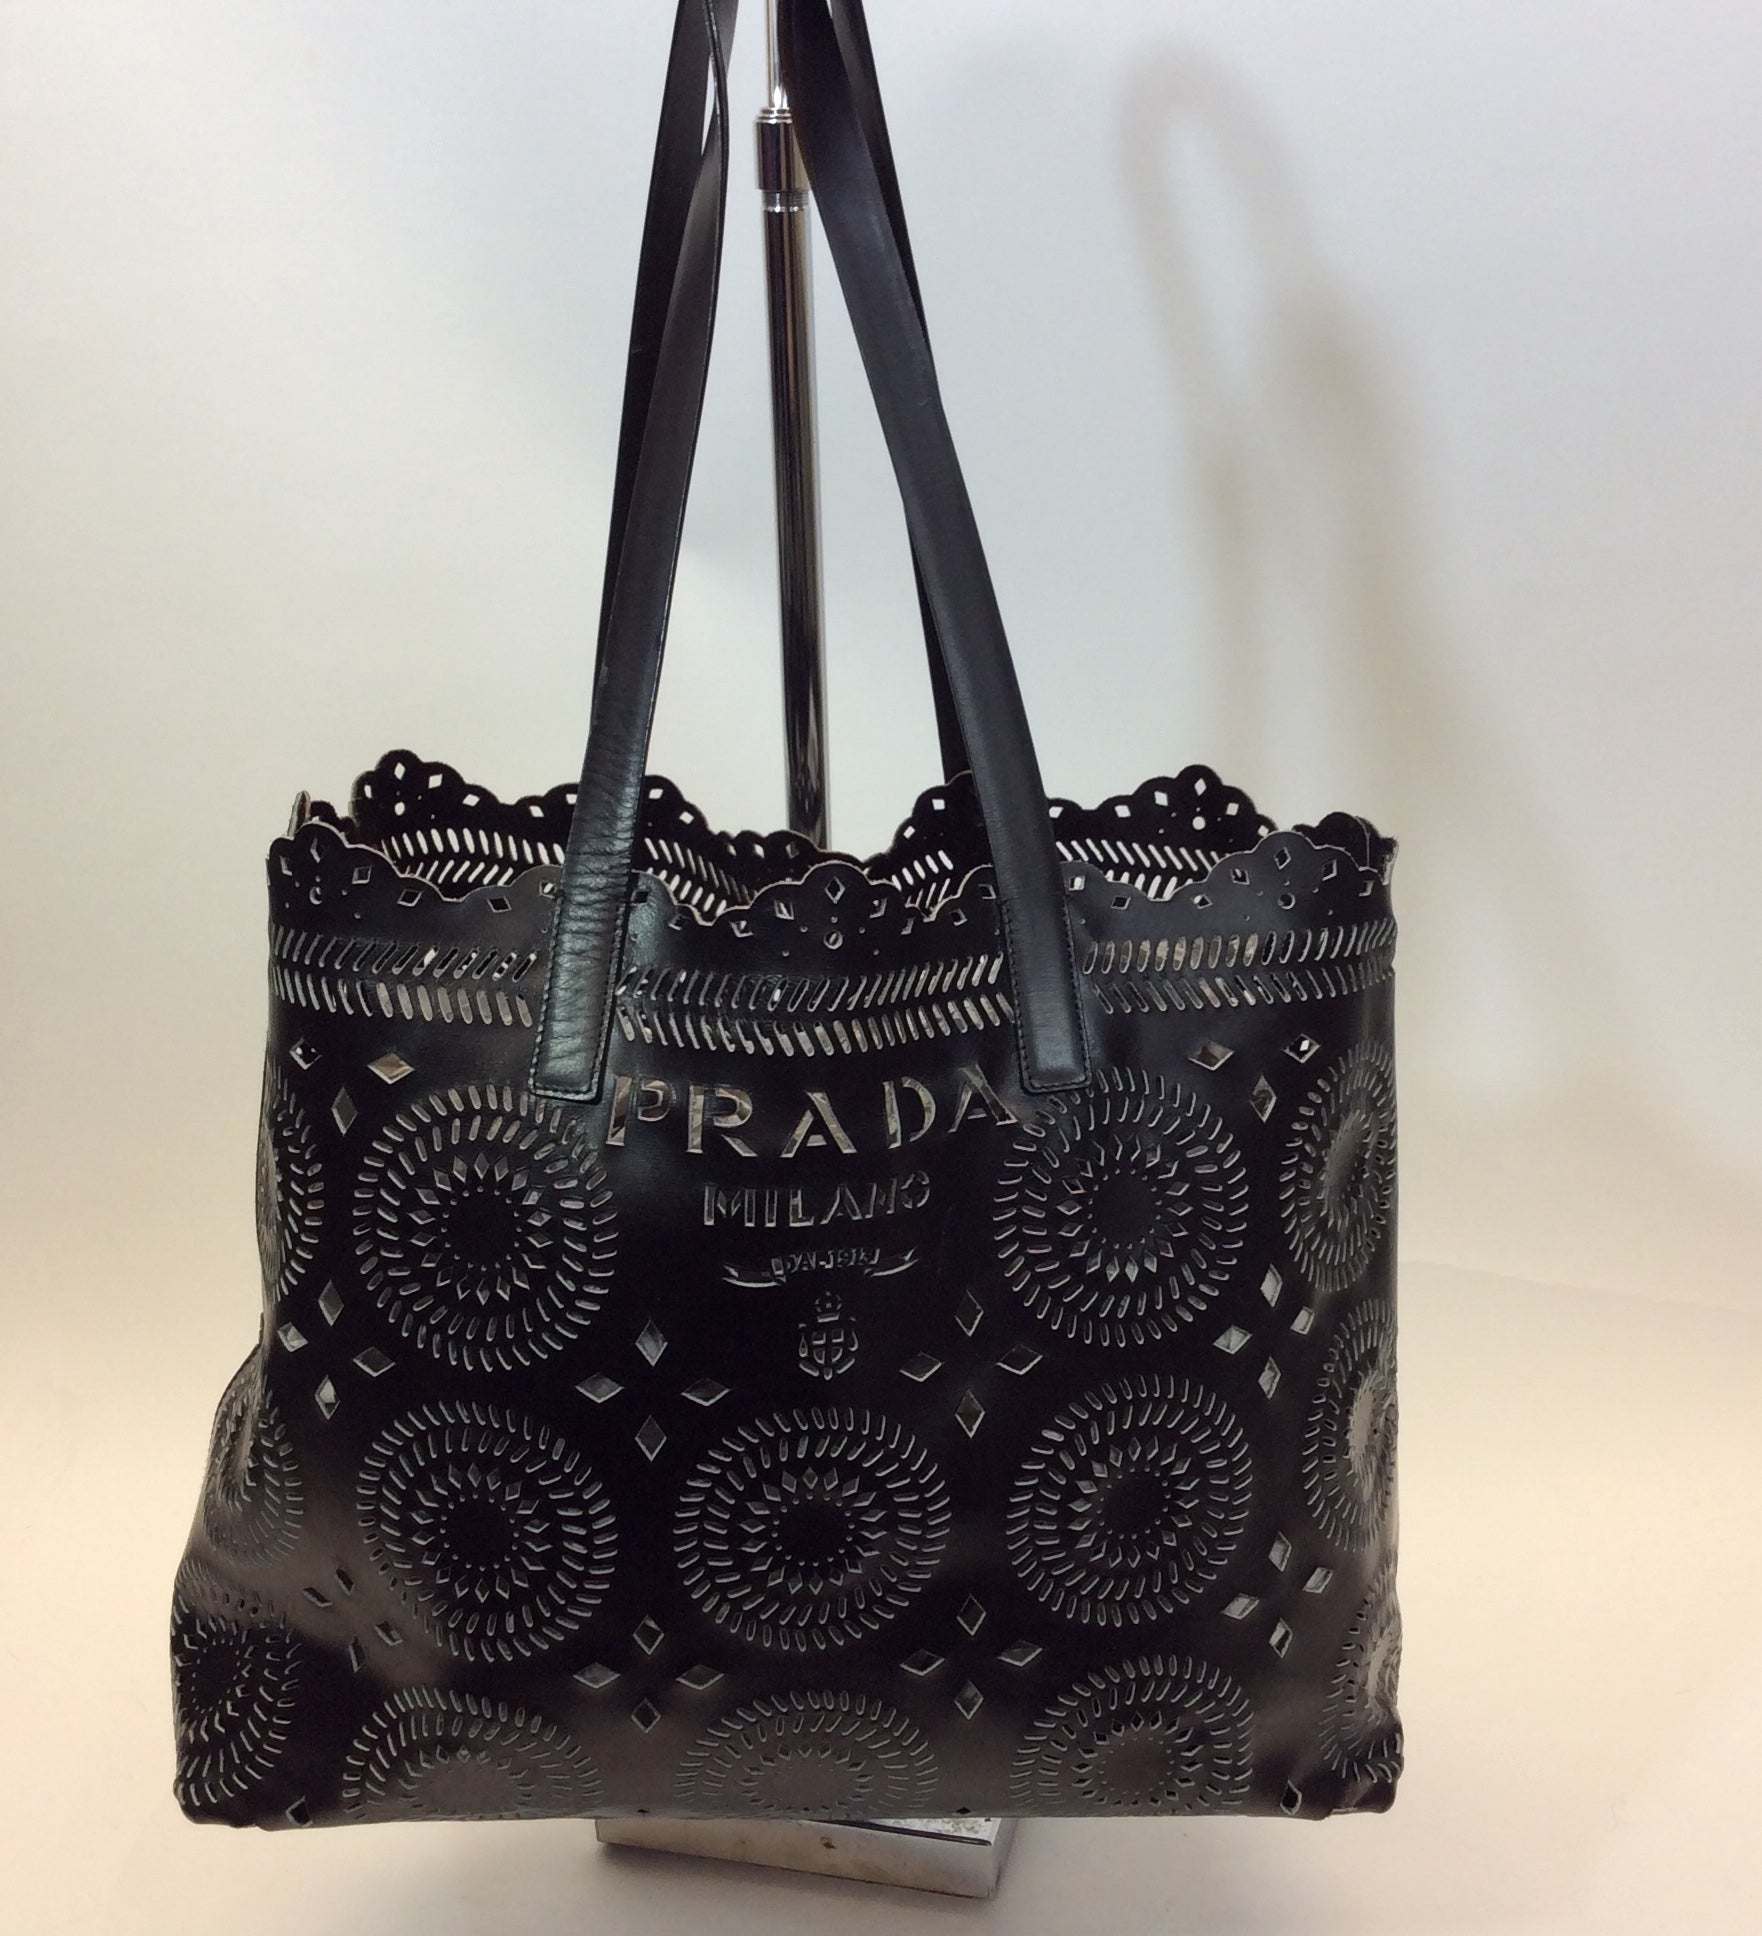 a46339c2b8b633 Prada Black Mandala Laser Cut Tote Bag For Sale at 1stdibs